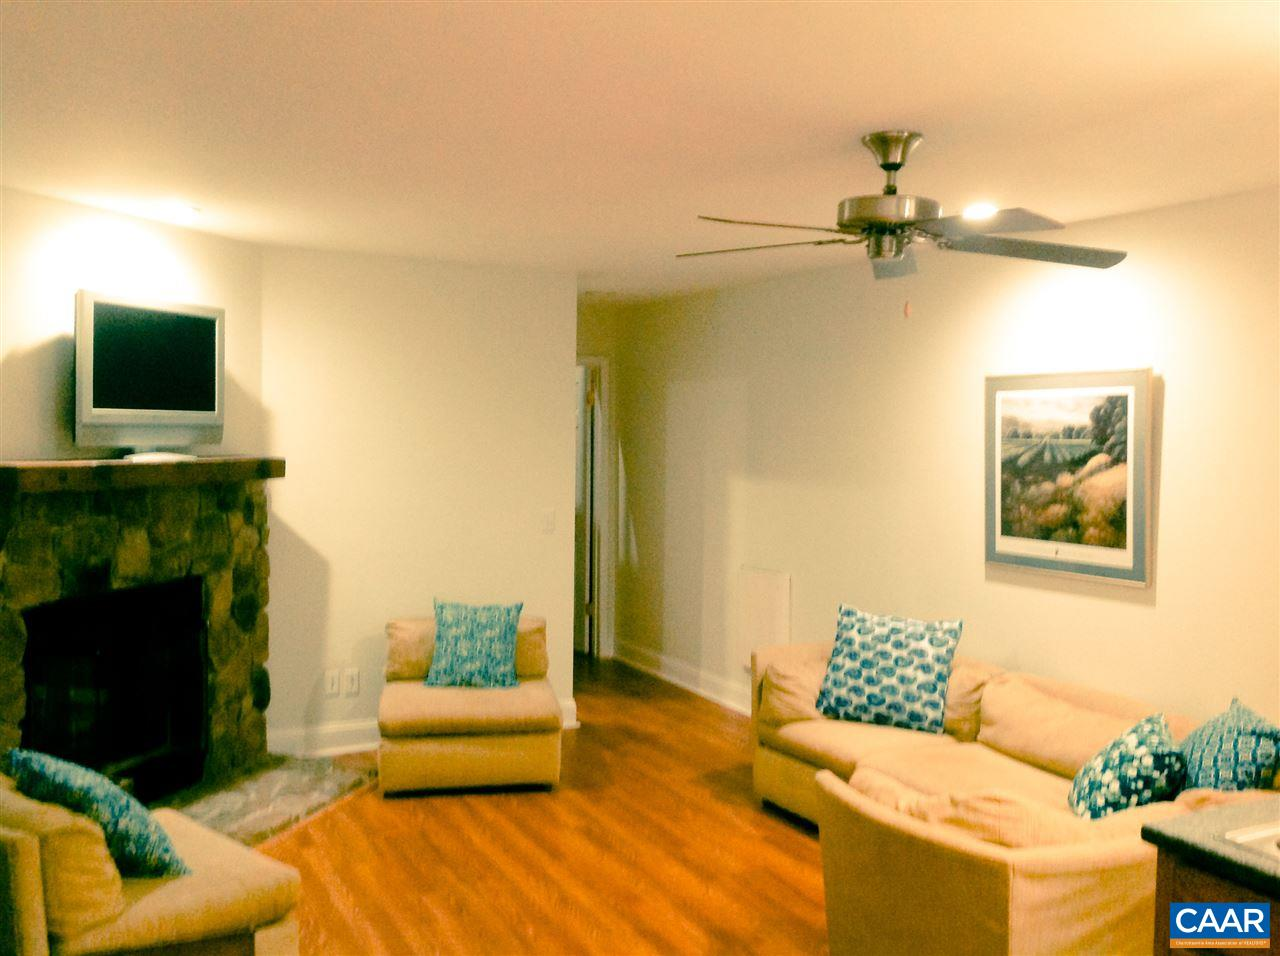 home for sale , MLS #571425, 2243 Tanners Ridge Condos